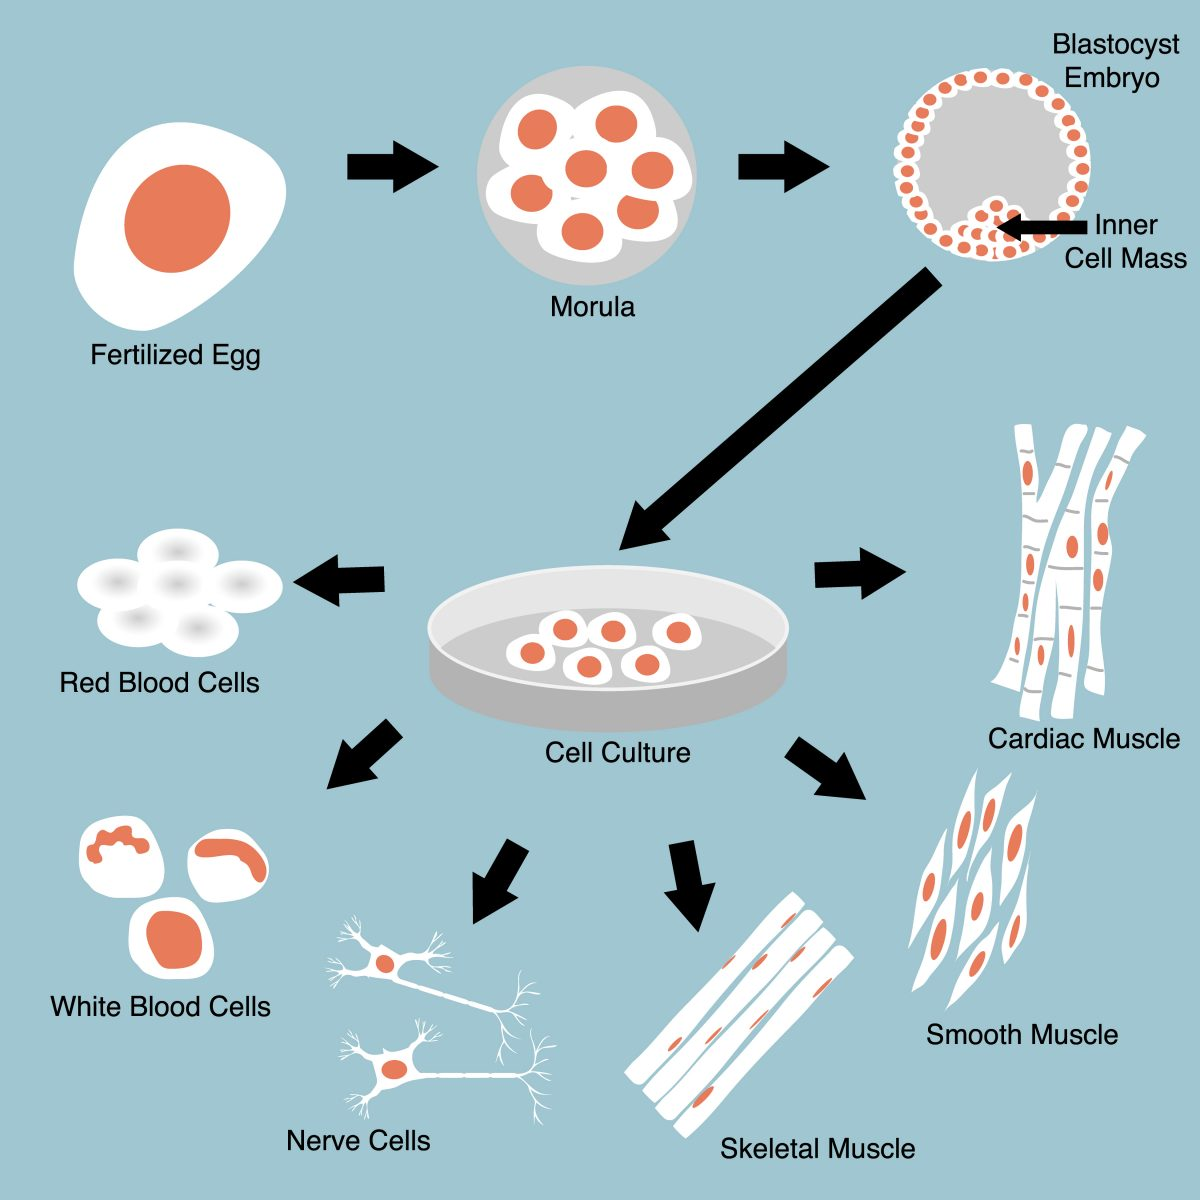 Low-Dose Irradiation Enhances Gene-Editing in Human Pluripotent Stem Cells